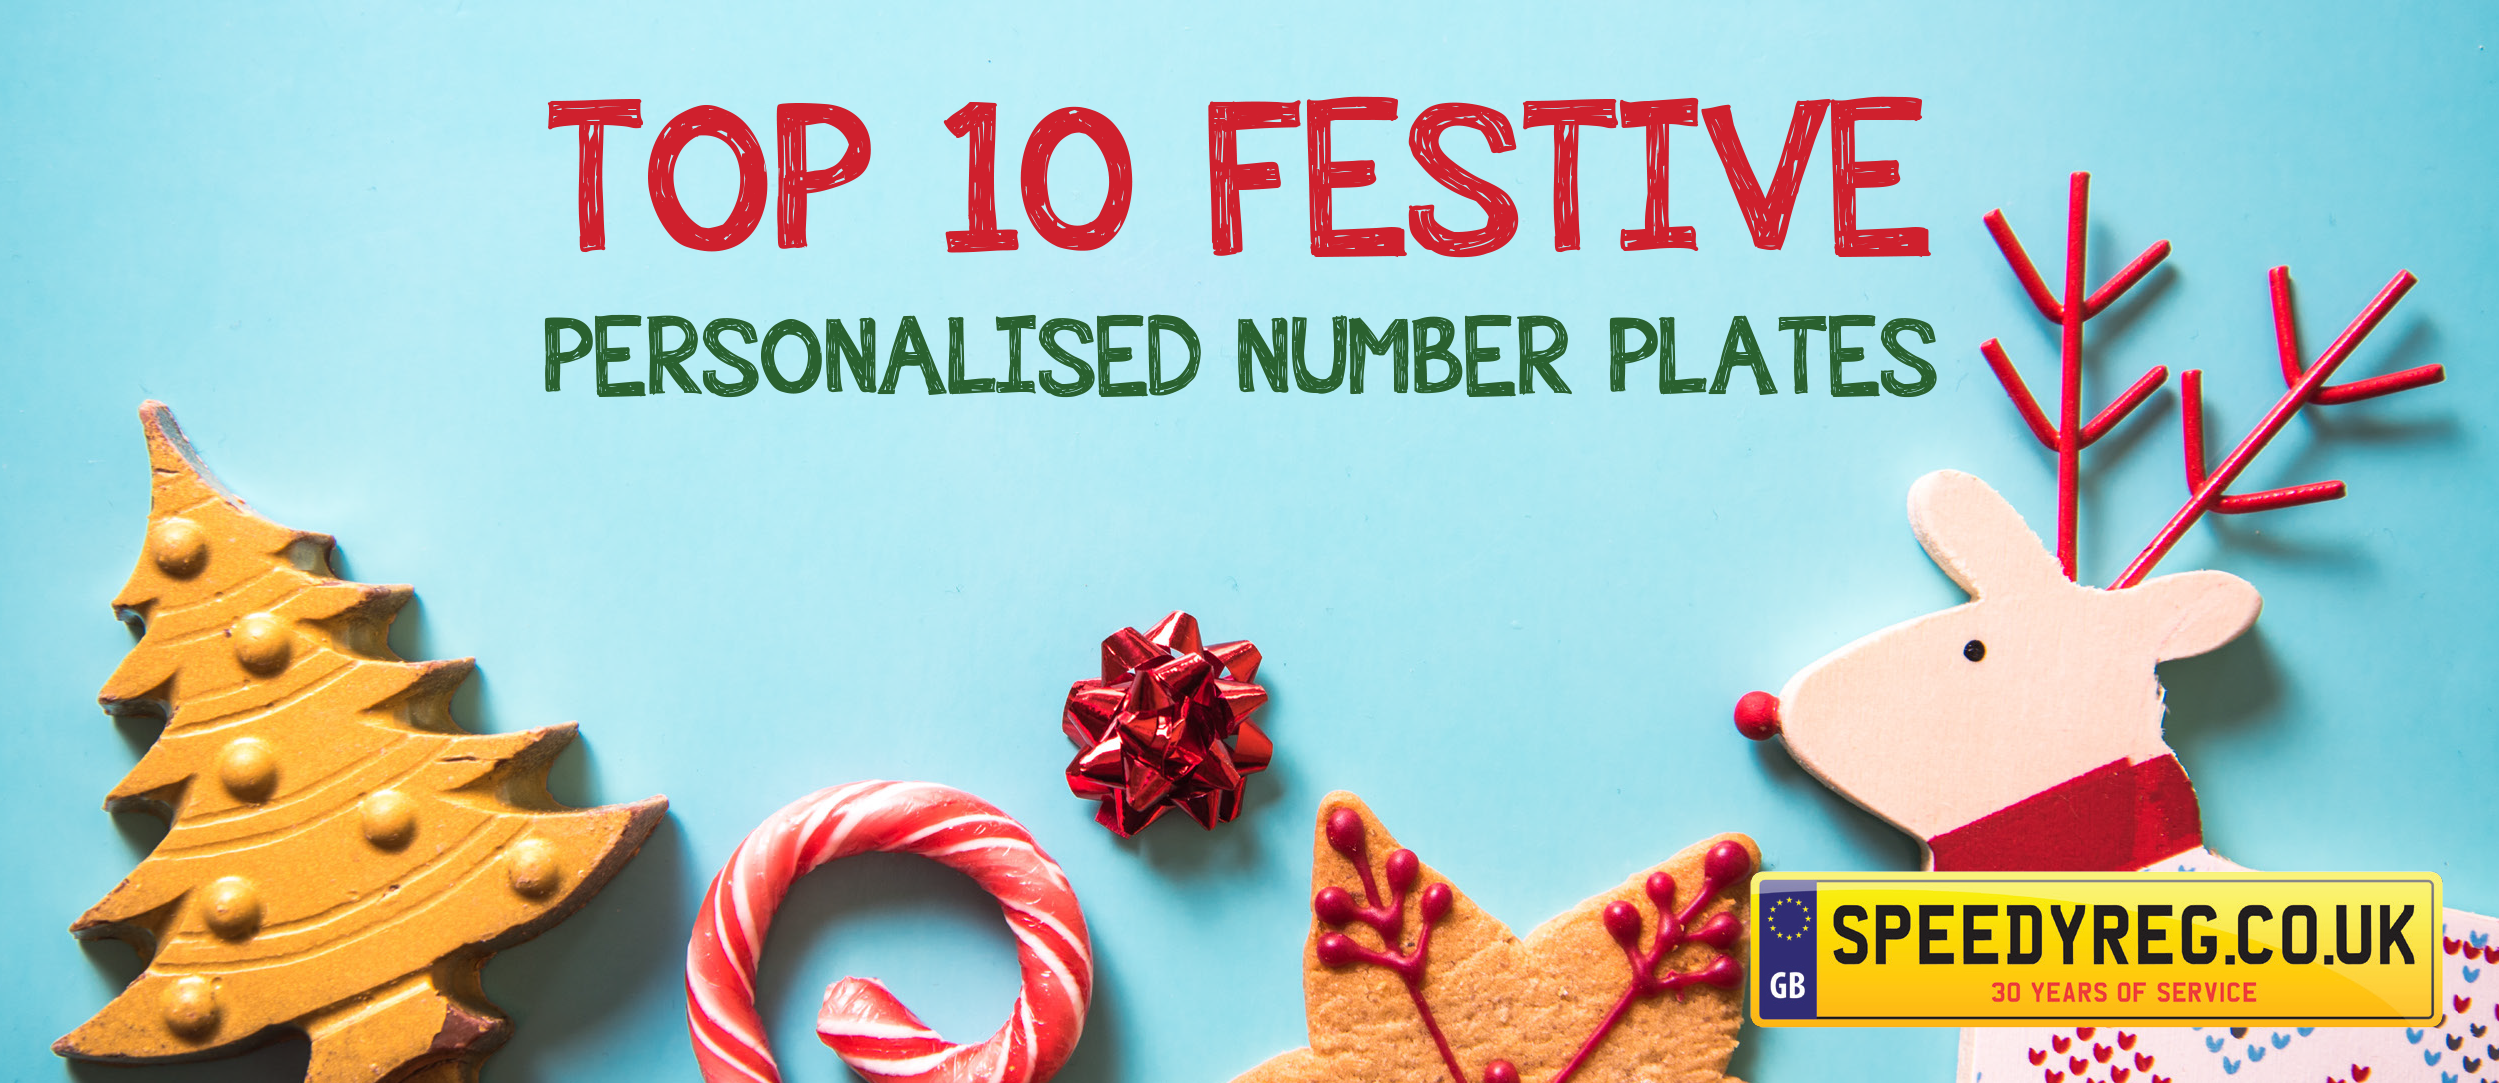 7-top-10-festive-personalised-number-plates